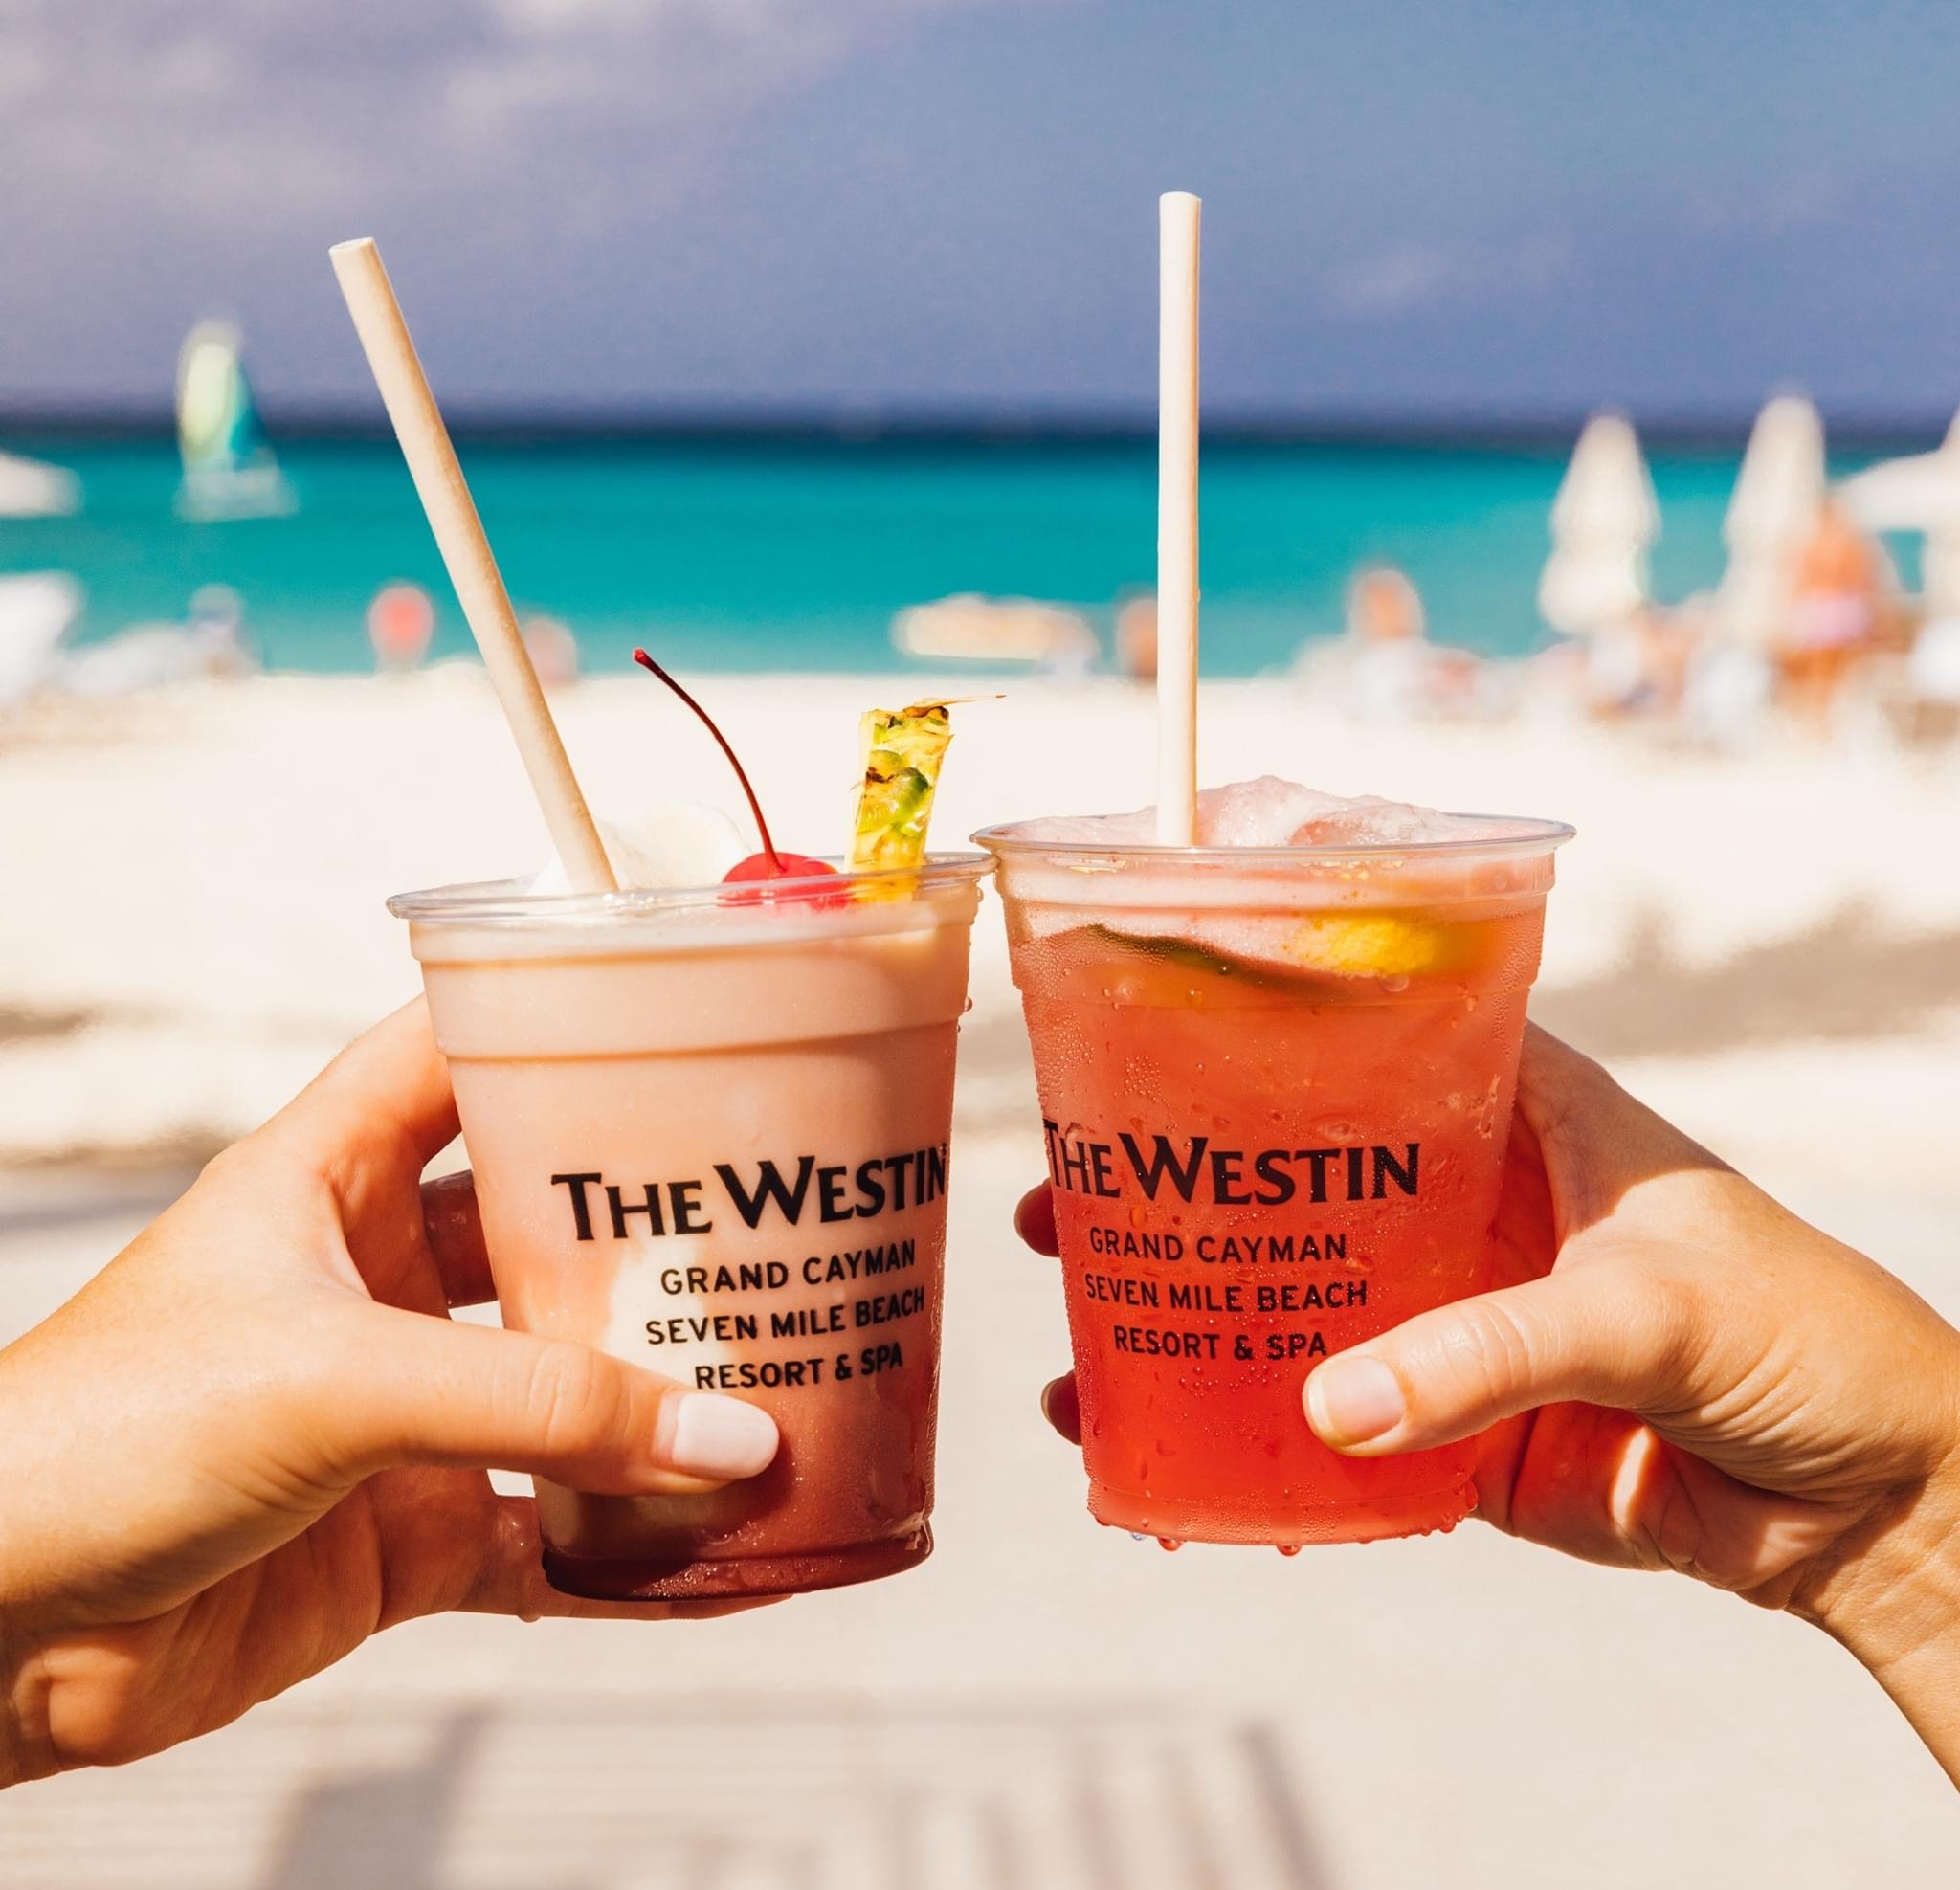 Westin Cayman Drinks overlooking the Ocean